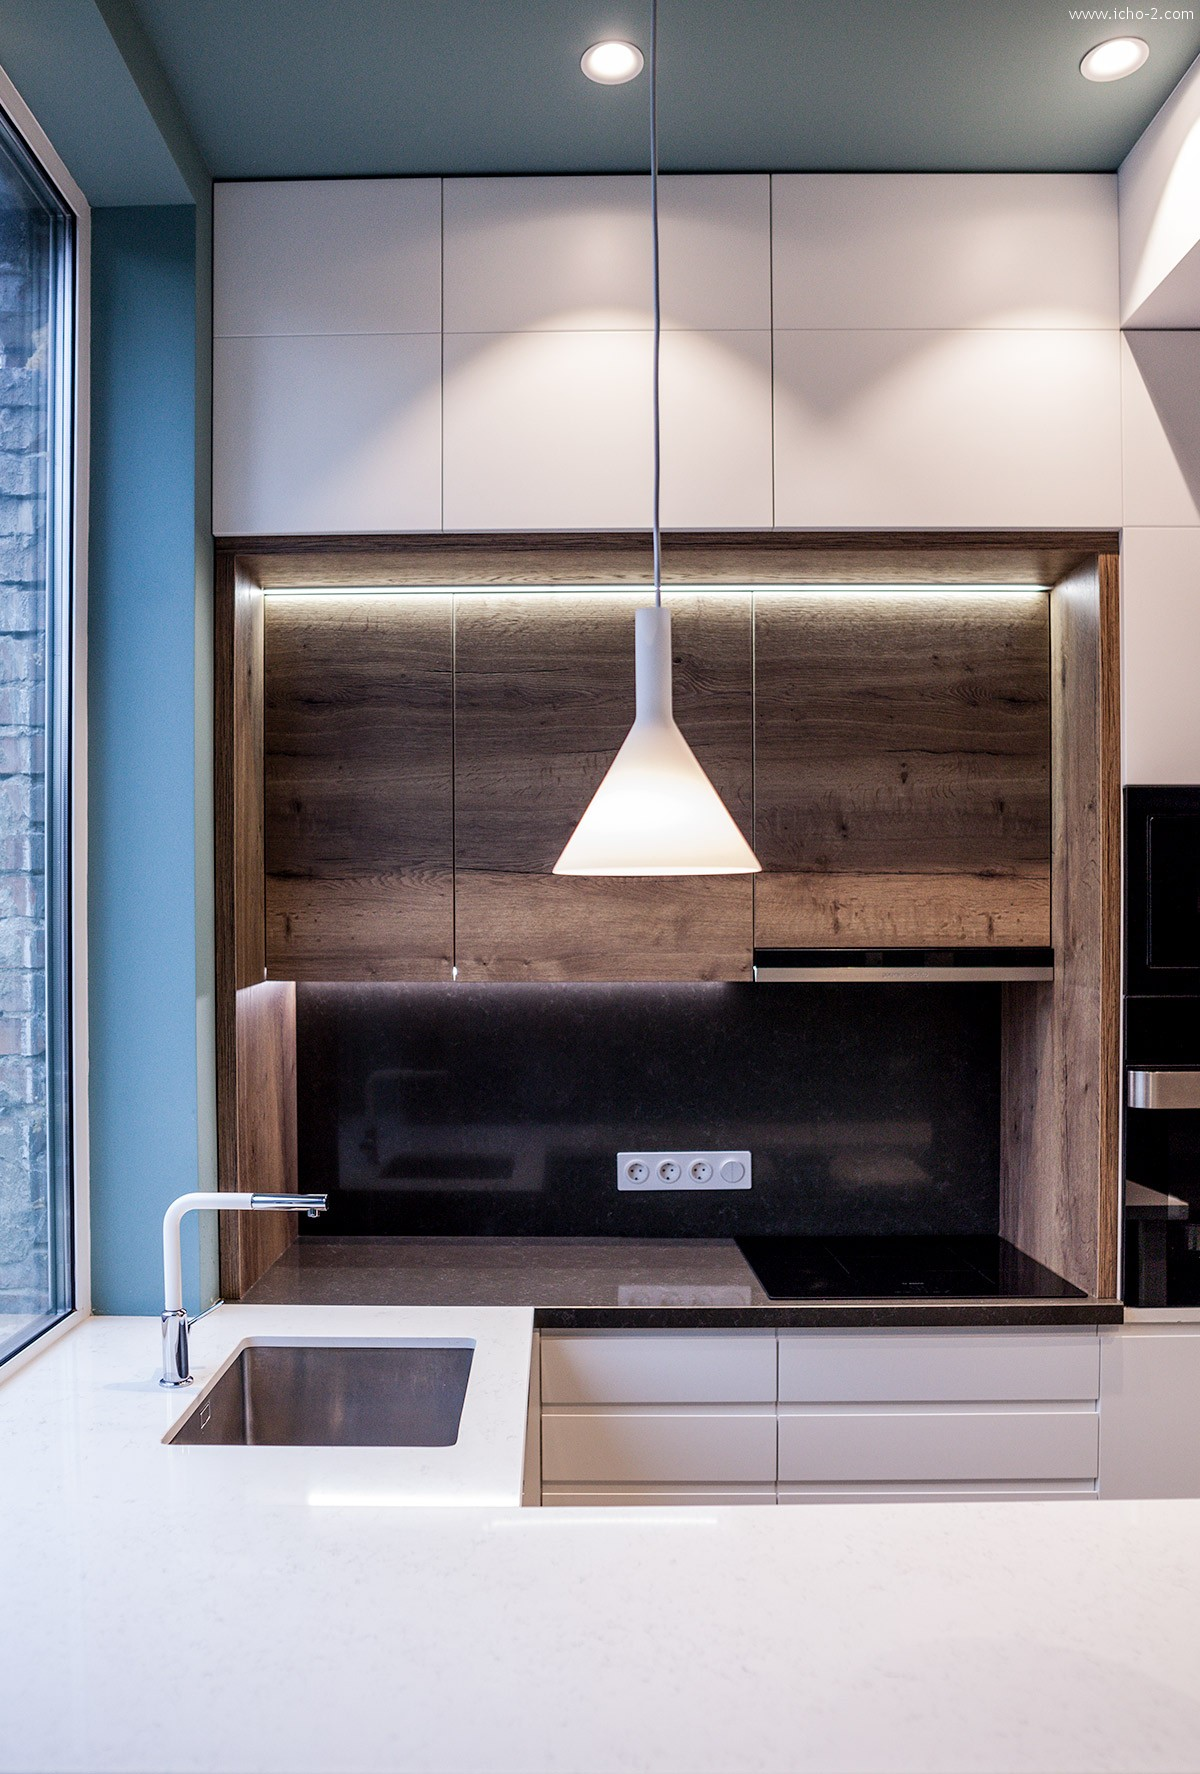 ICHO2-kuhnq-po-poruchka-custom-kitchen-design20